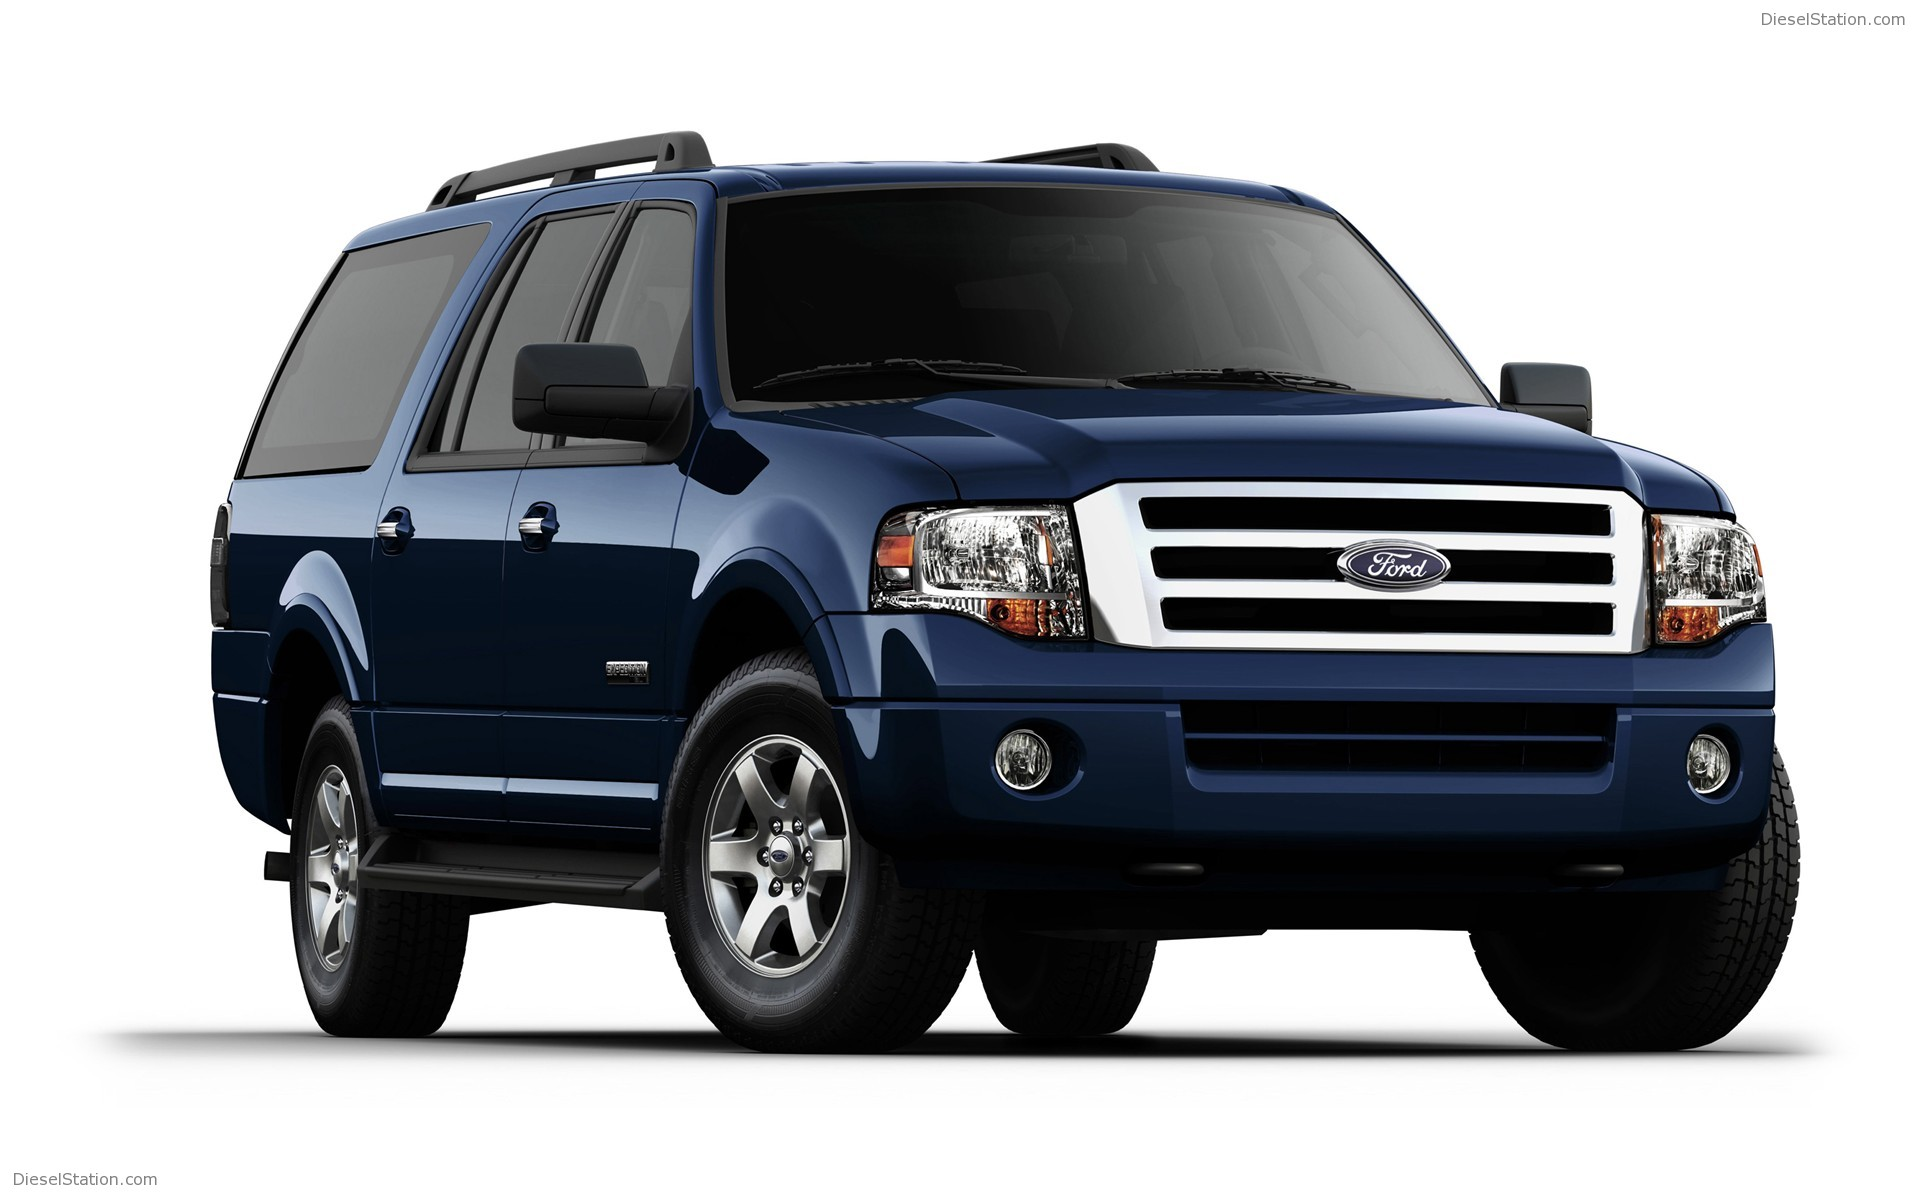 2008 ford expedition information and photos momentcar. Black Bedroom Furniture Sets. Home Design Ideas